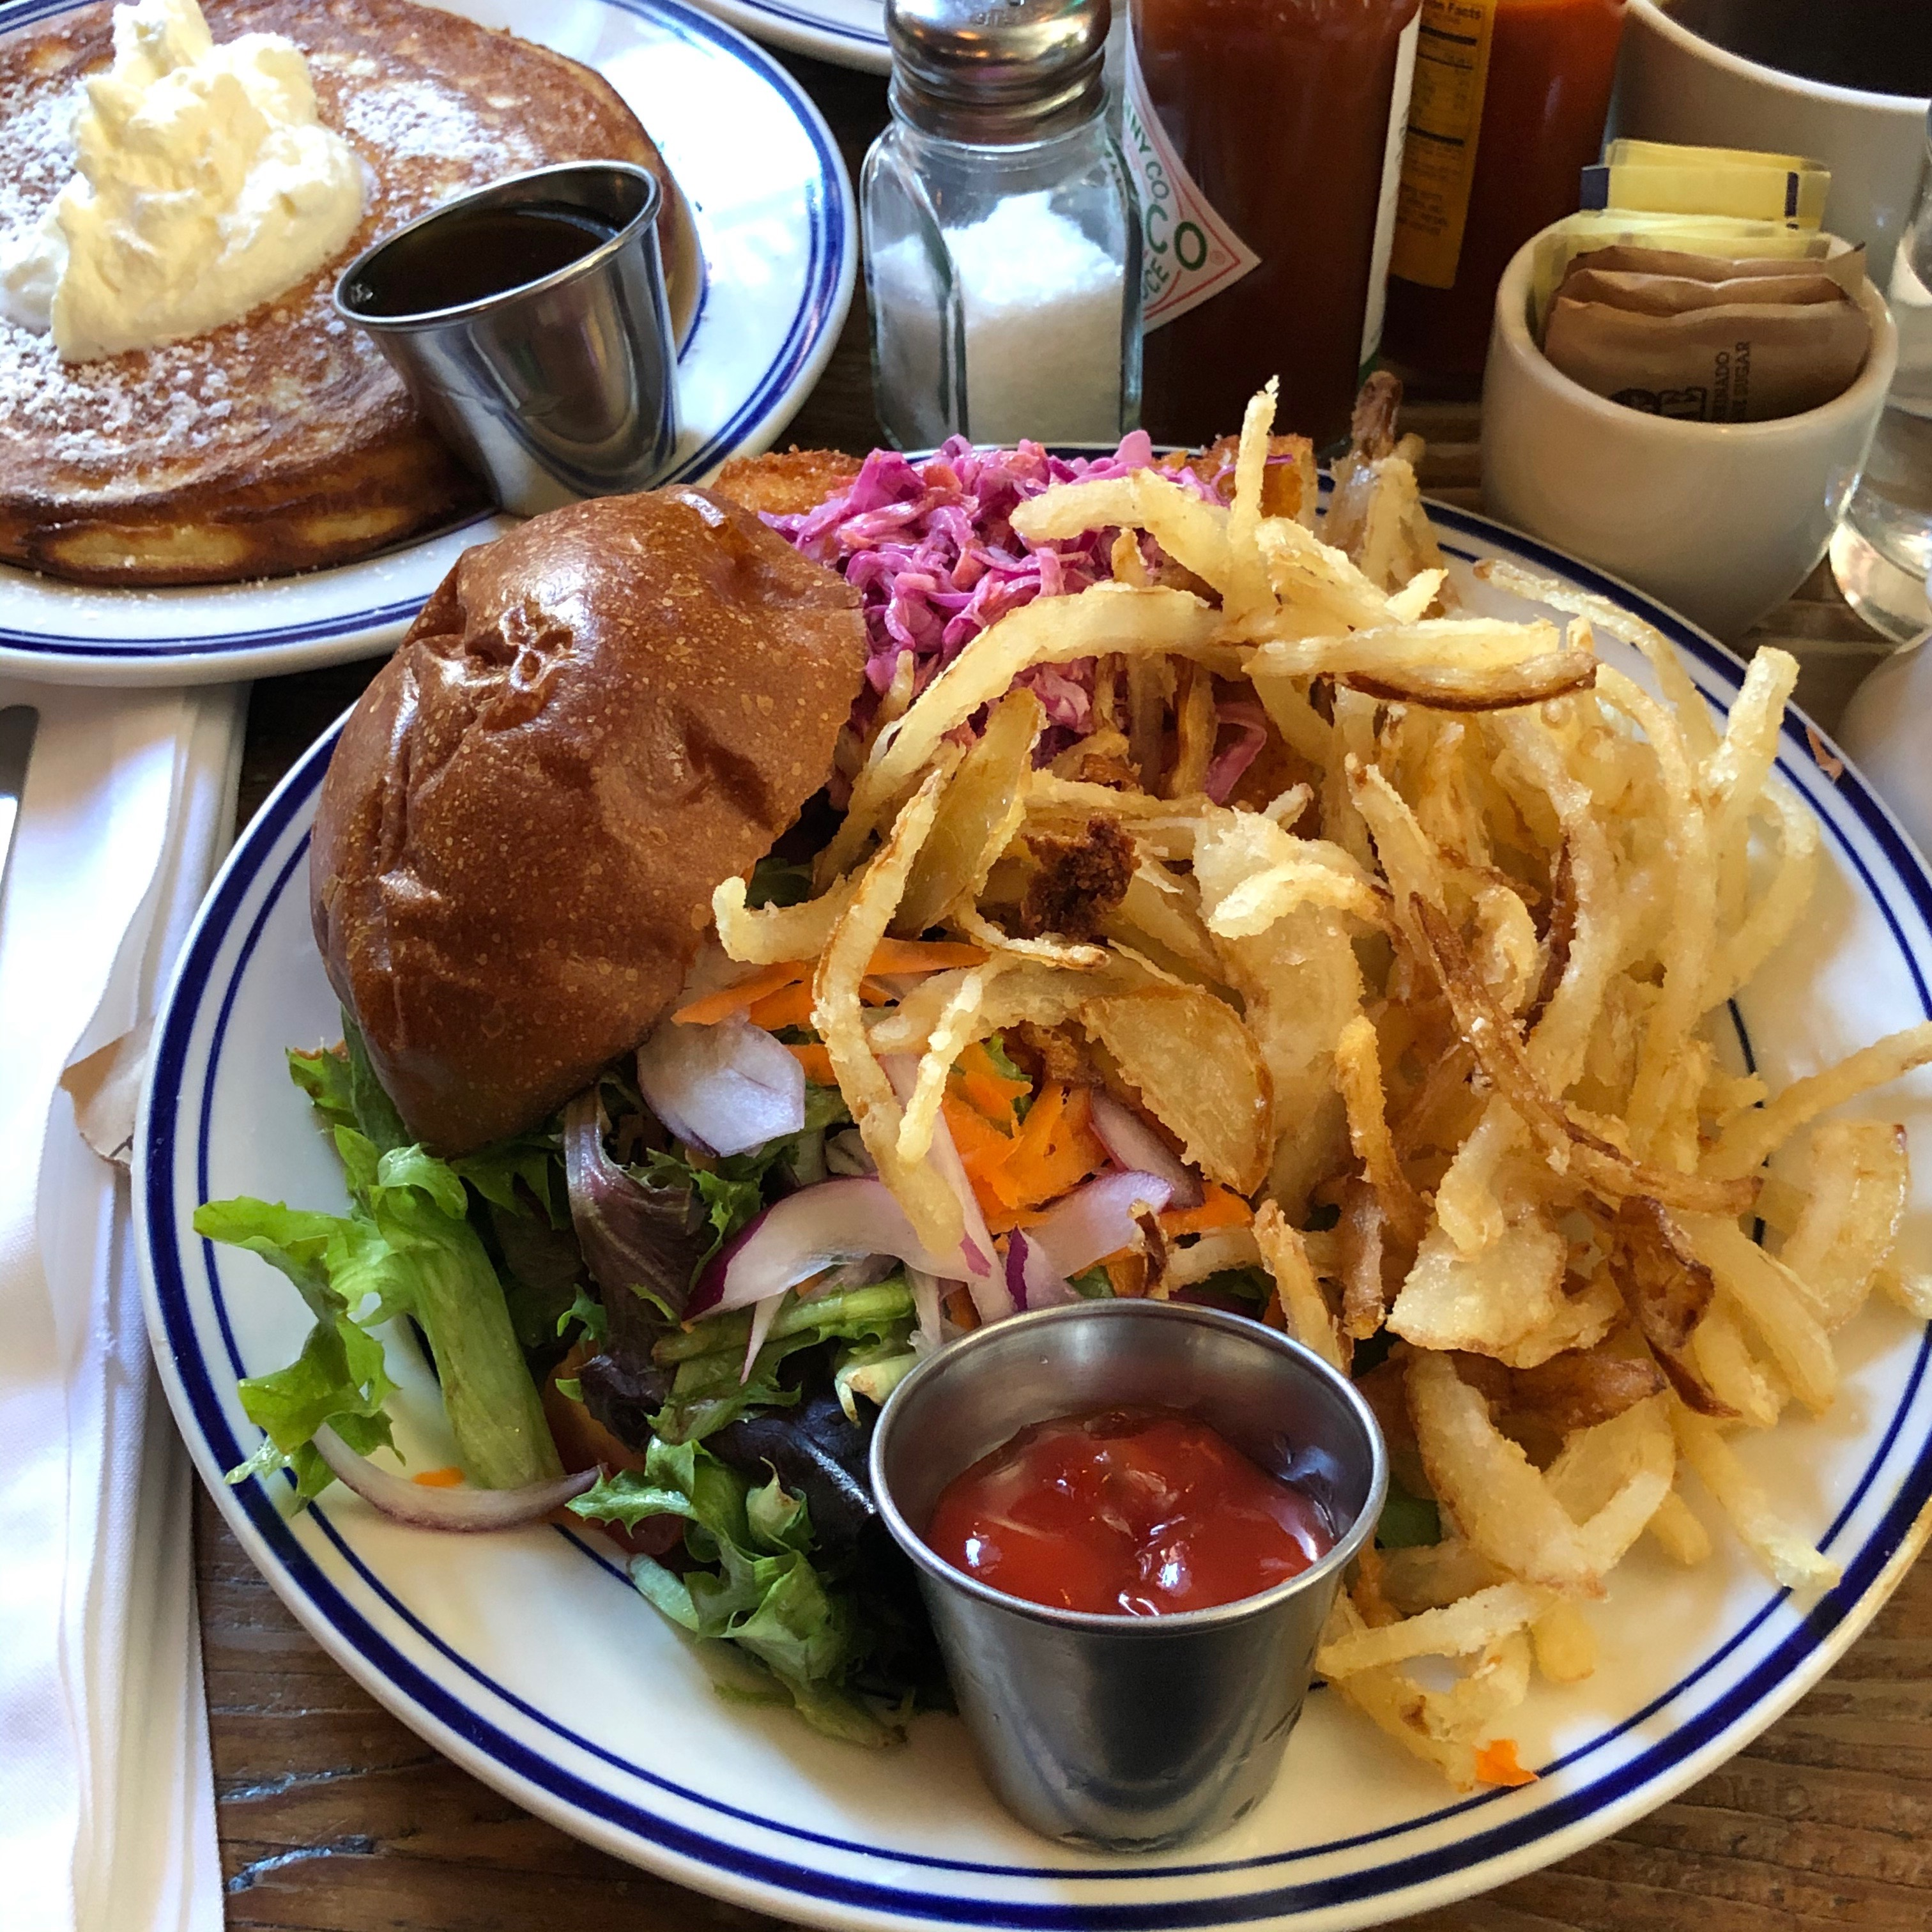 A plate of crispy, brown onion fries place next to some greens, a burger bun, and a small bowl of ketchup